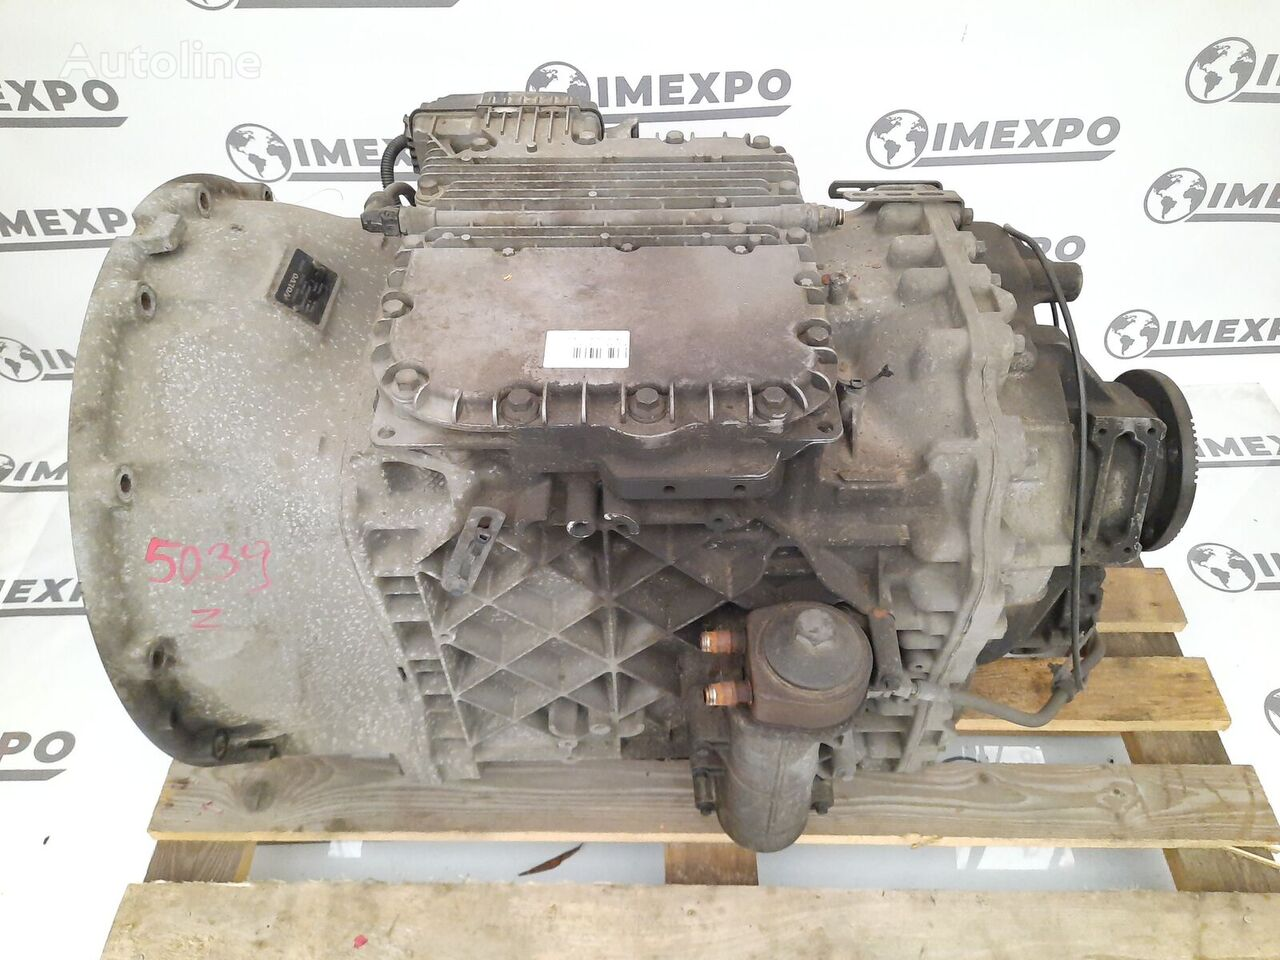 VOLVO AT2612E ISHIFT / AUTOMATIC GEARBOX (3190717) gearbox for VOLVO FH FM truck